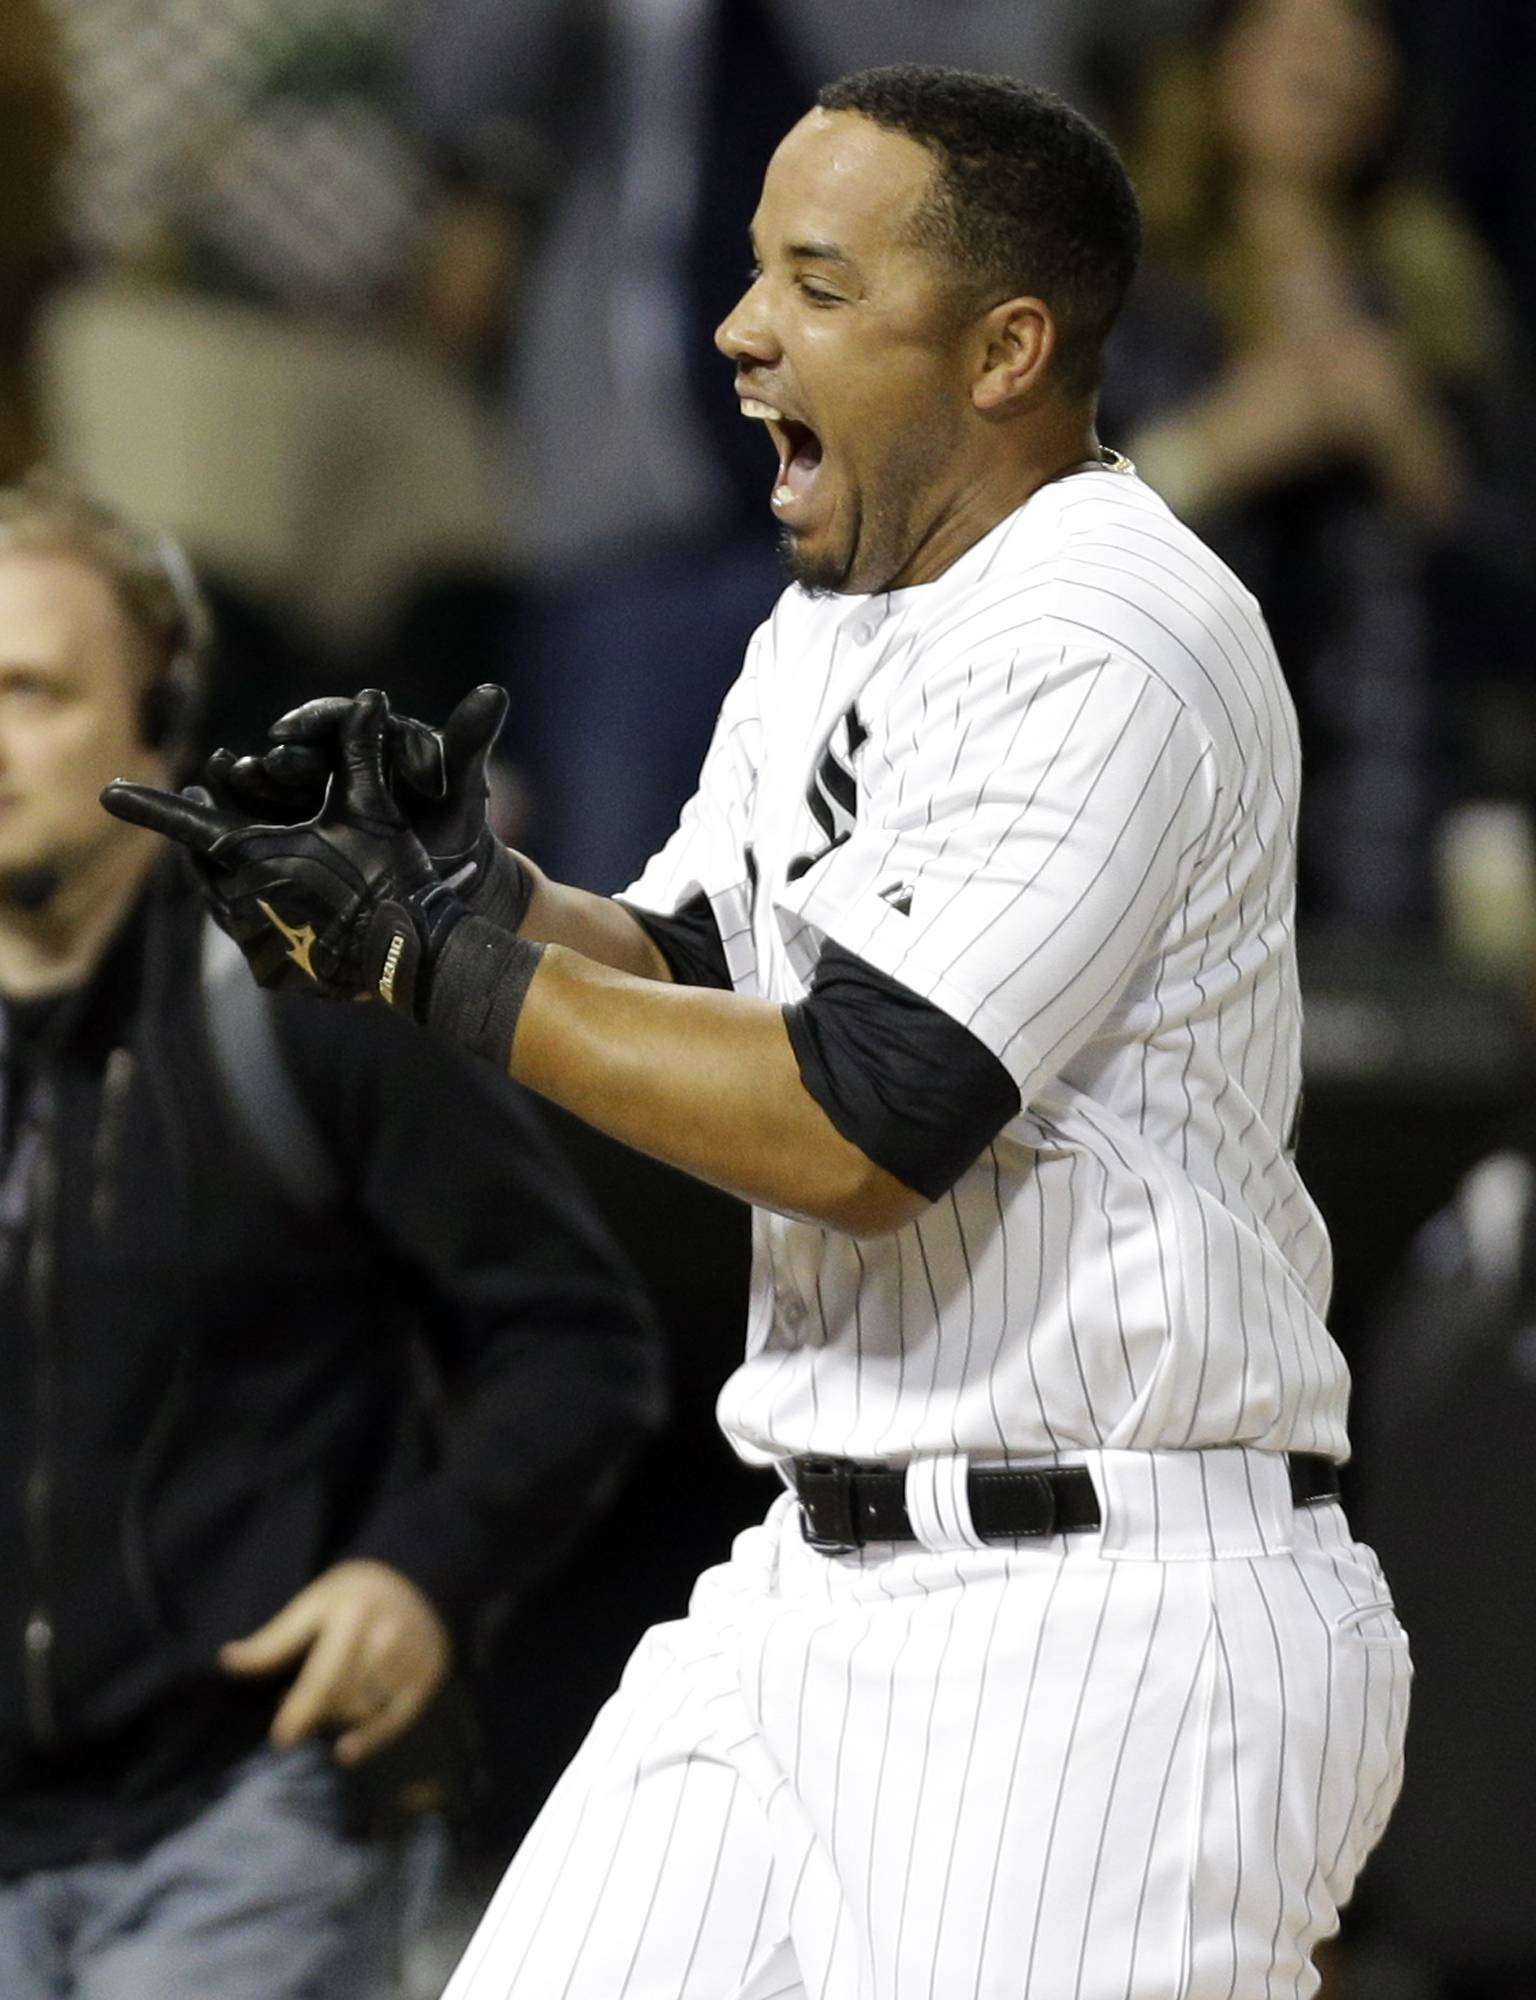 Jose Abreu celebrates as he rounds the bases after hitting a grand slam to lift the White Sox over Tampa Bay on Friday night at U.S. Cellular Field.